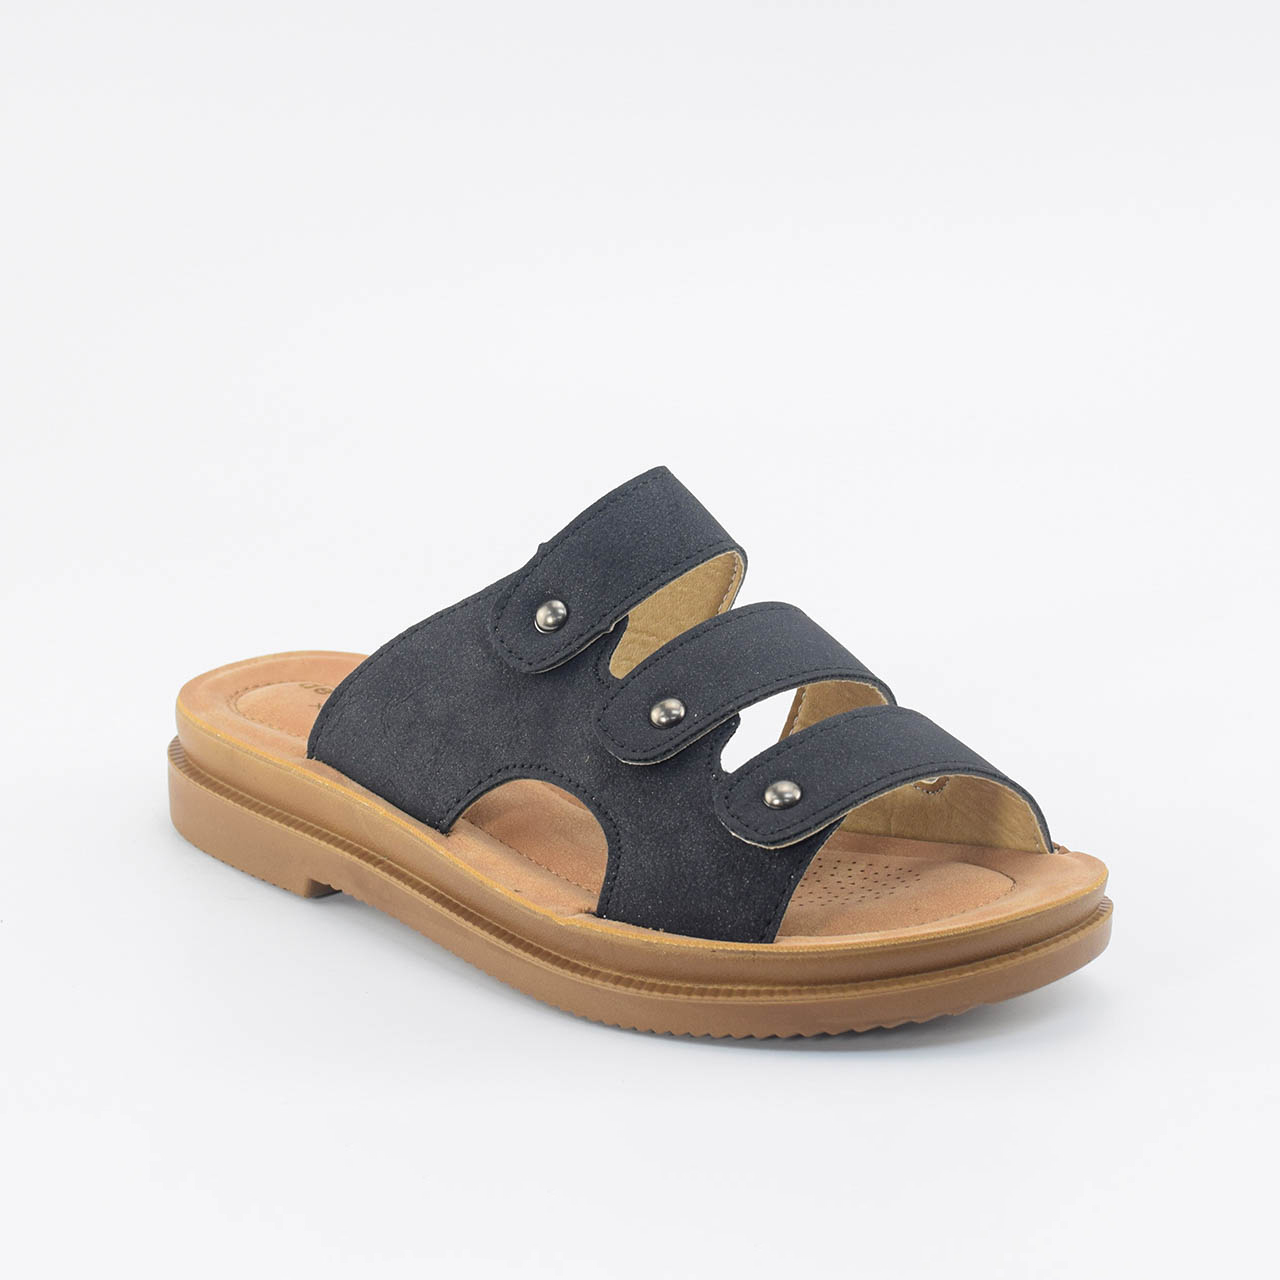 Leah Strappy Sliders in Black